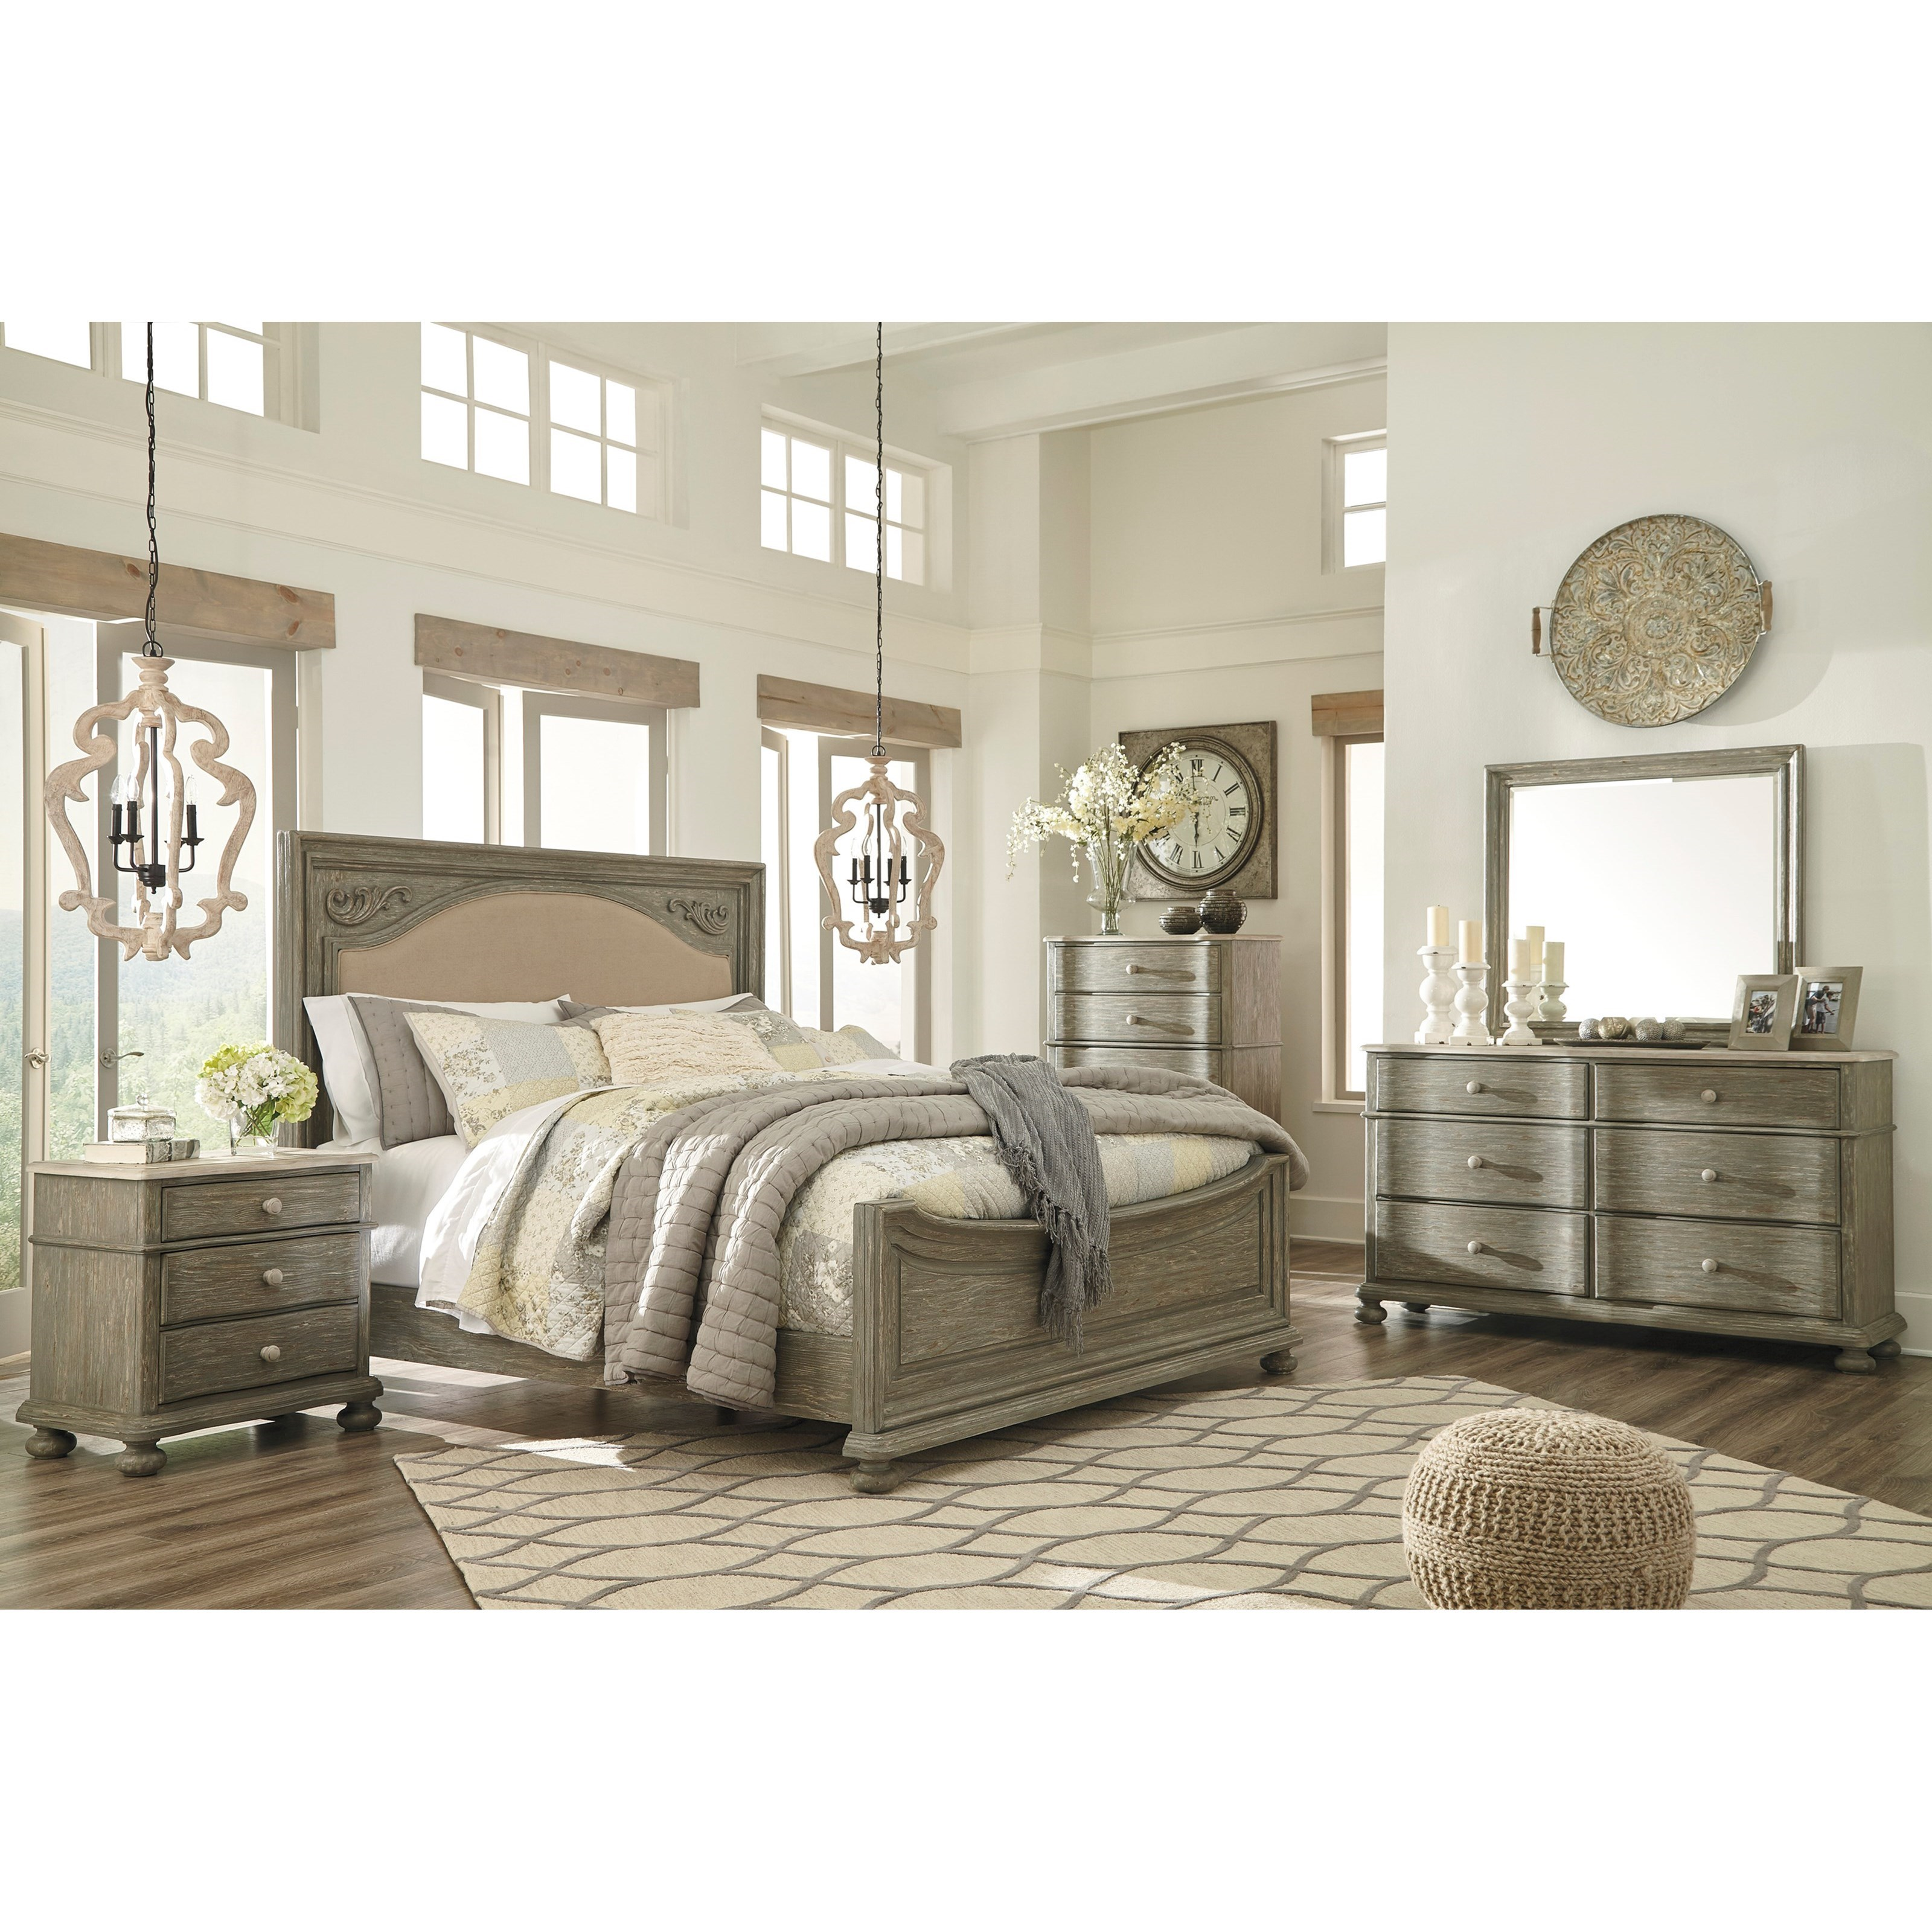 Signature Design by Ashley Marleny Queen Bedroom Group - Item Number: B644 Q  Bedroom Group